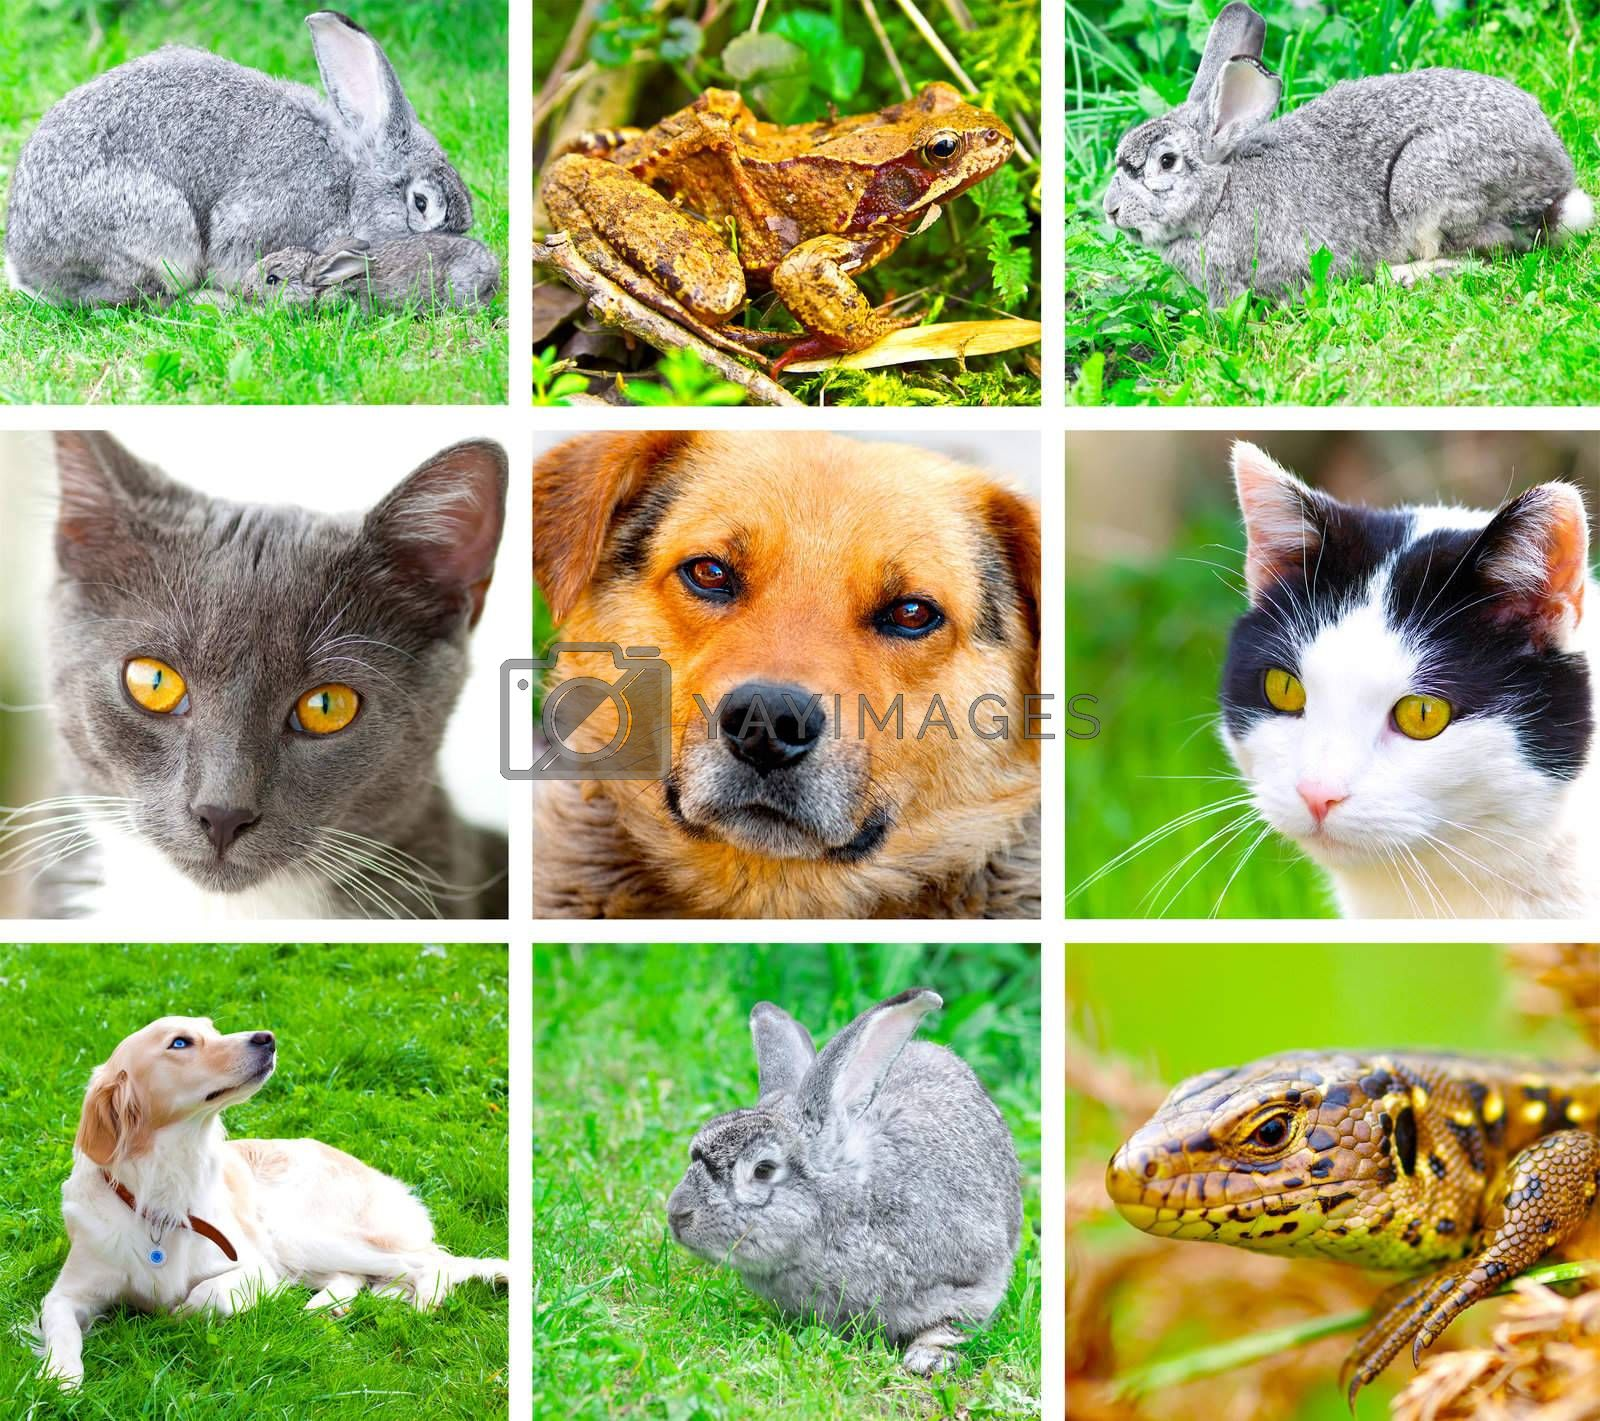 Collage of animals images. ( cat, dog, lizard, frog, rabbit )